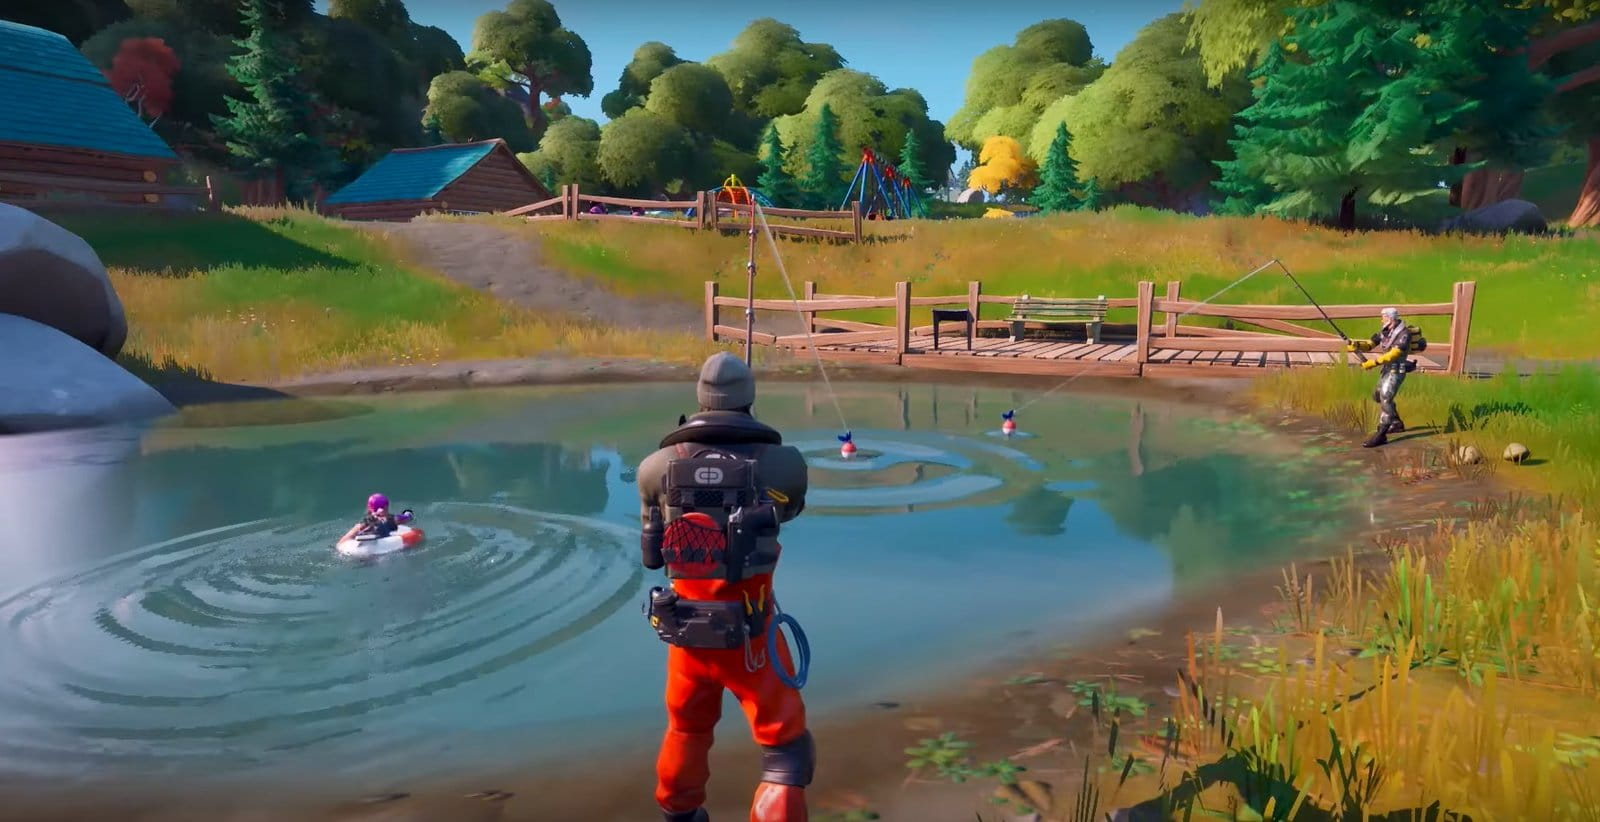 Leaked 'Fortnite' Chapter 2 trailer showcases a new map and boats